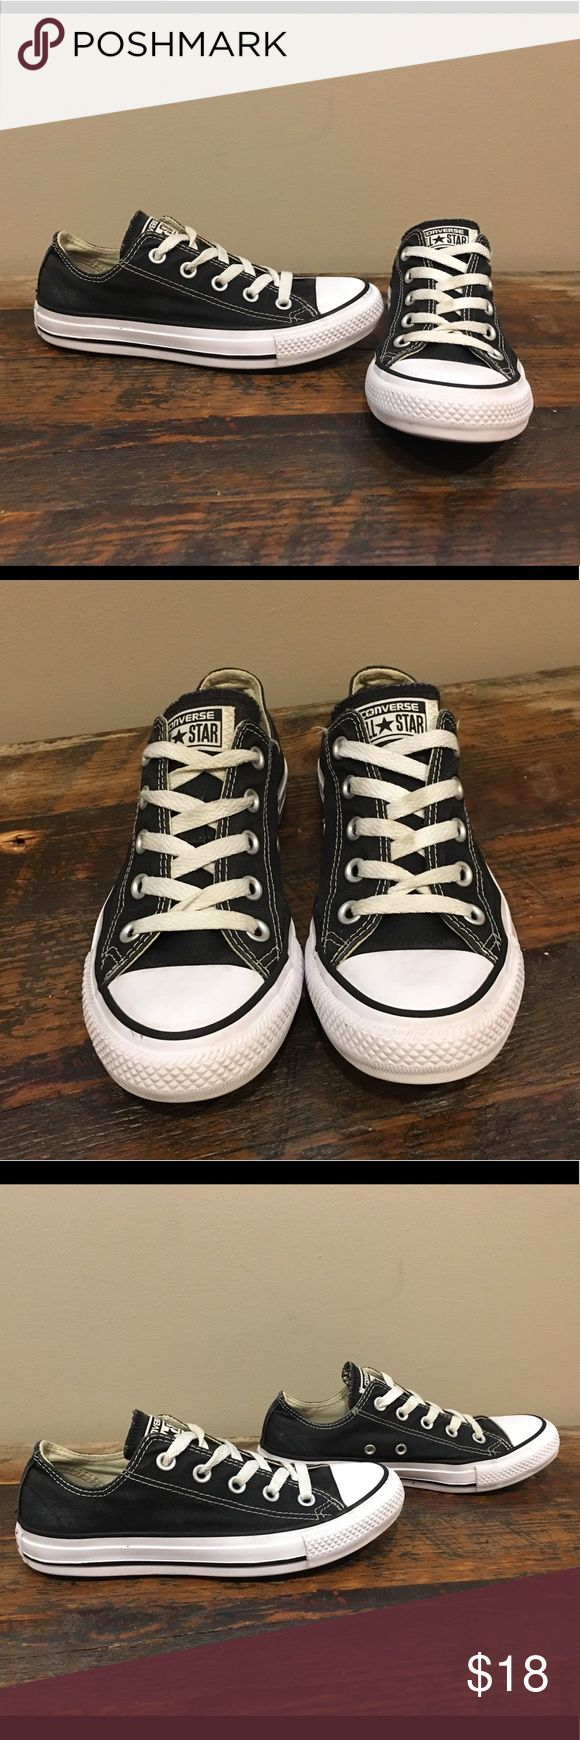 Converse Black Chucks sz 3.5Y Great condition, just some minor fading/rubbing on the very back of the shoe. Still an awesome shoe for a kiddo! Youth size 3.5. Please check out my closet for more awesome kids items! Bundle for savings or make me a reasonable offer 😎 Converse Shoes